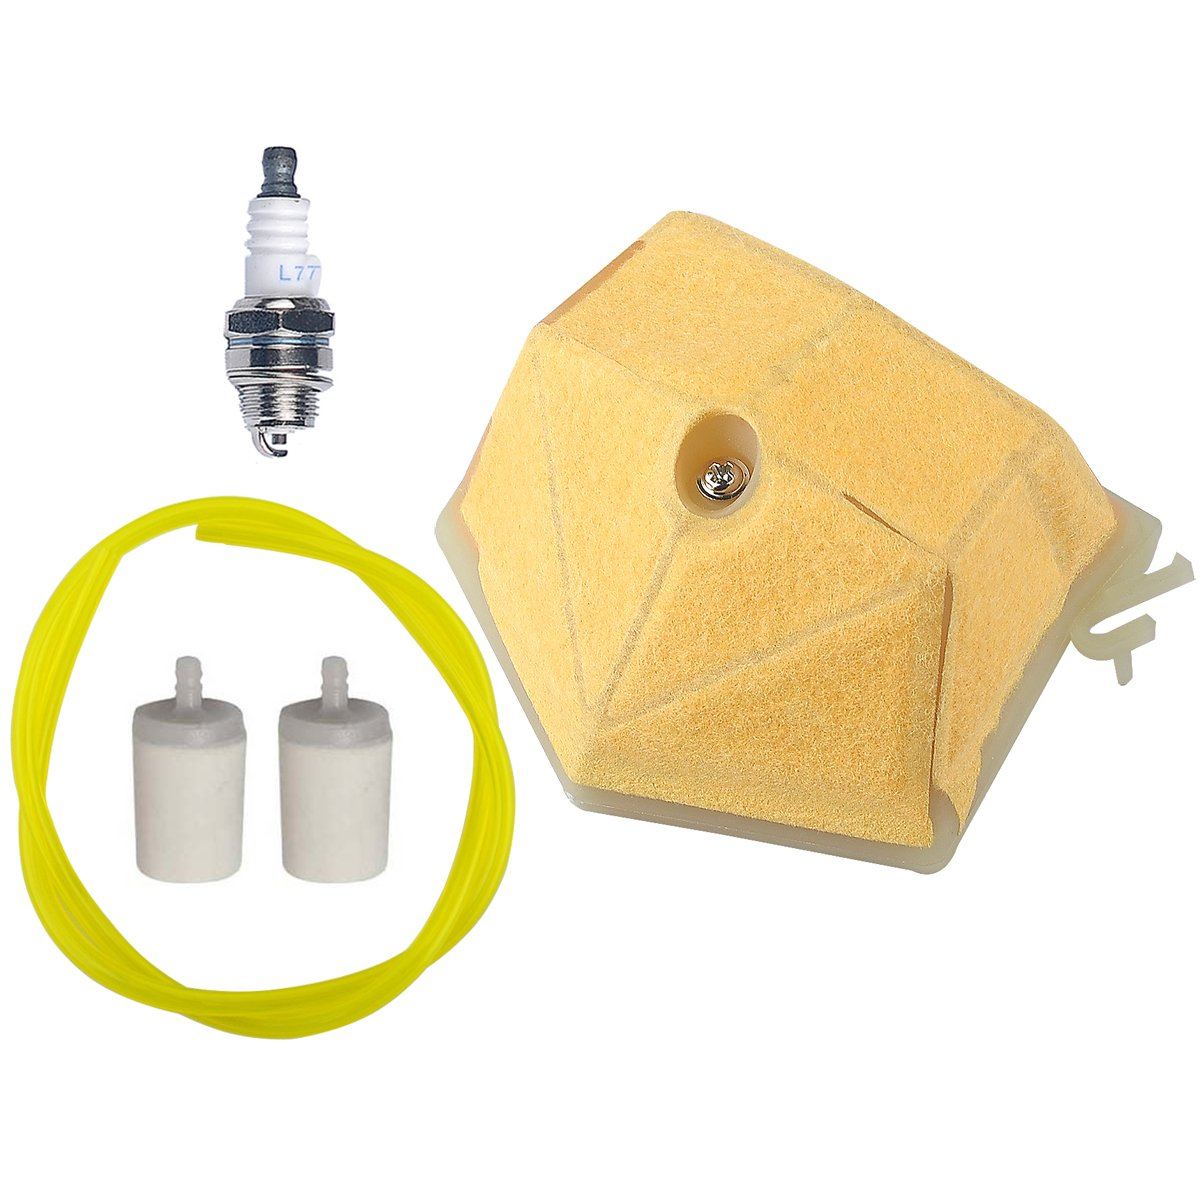 Hipa Air Filter Fuel Spark Plug Line Griffin Filters Hose For Husqvarna 51 55 55epa Rancher Epa Chainsaw Garden Outdoor